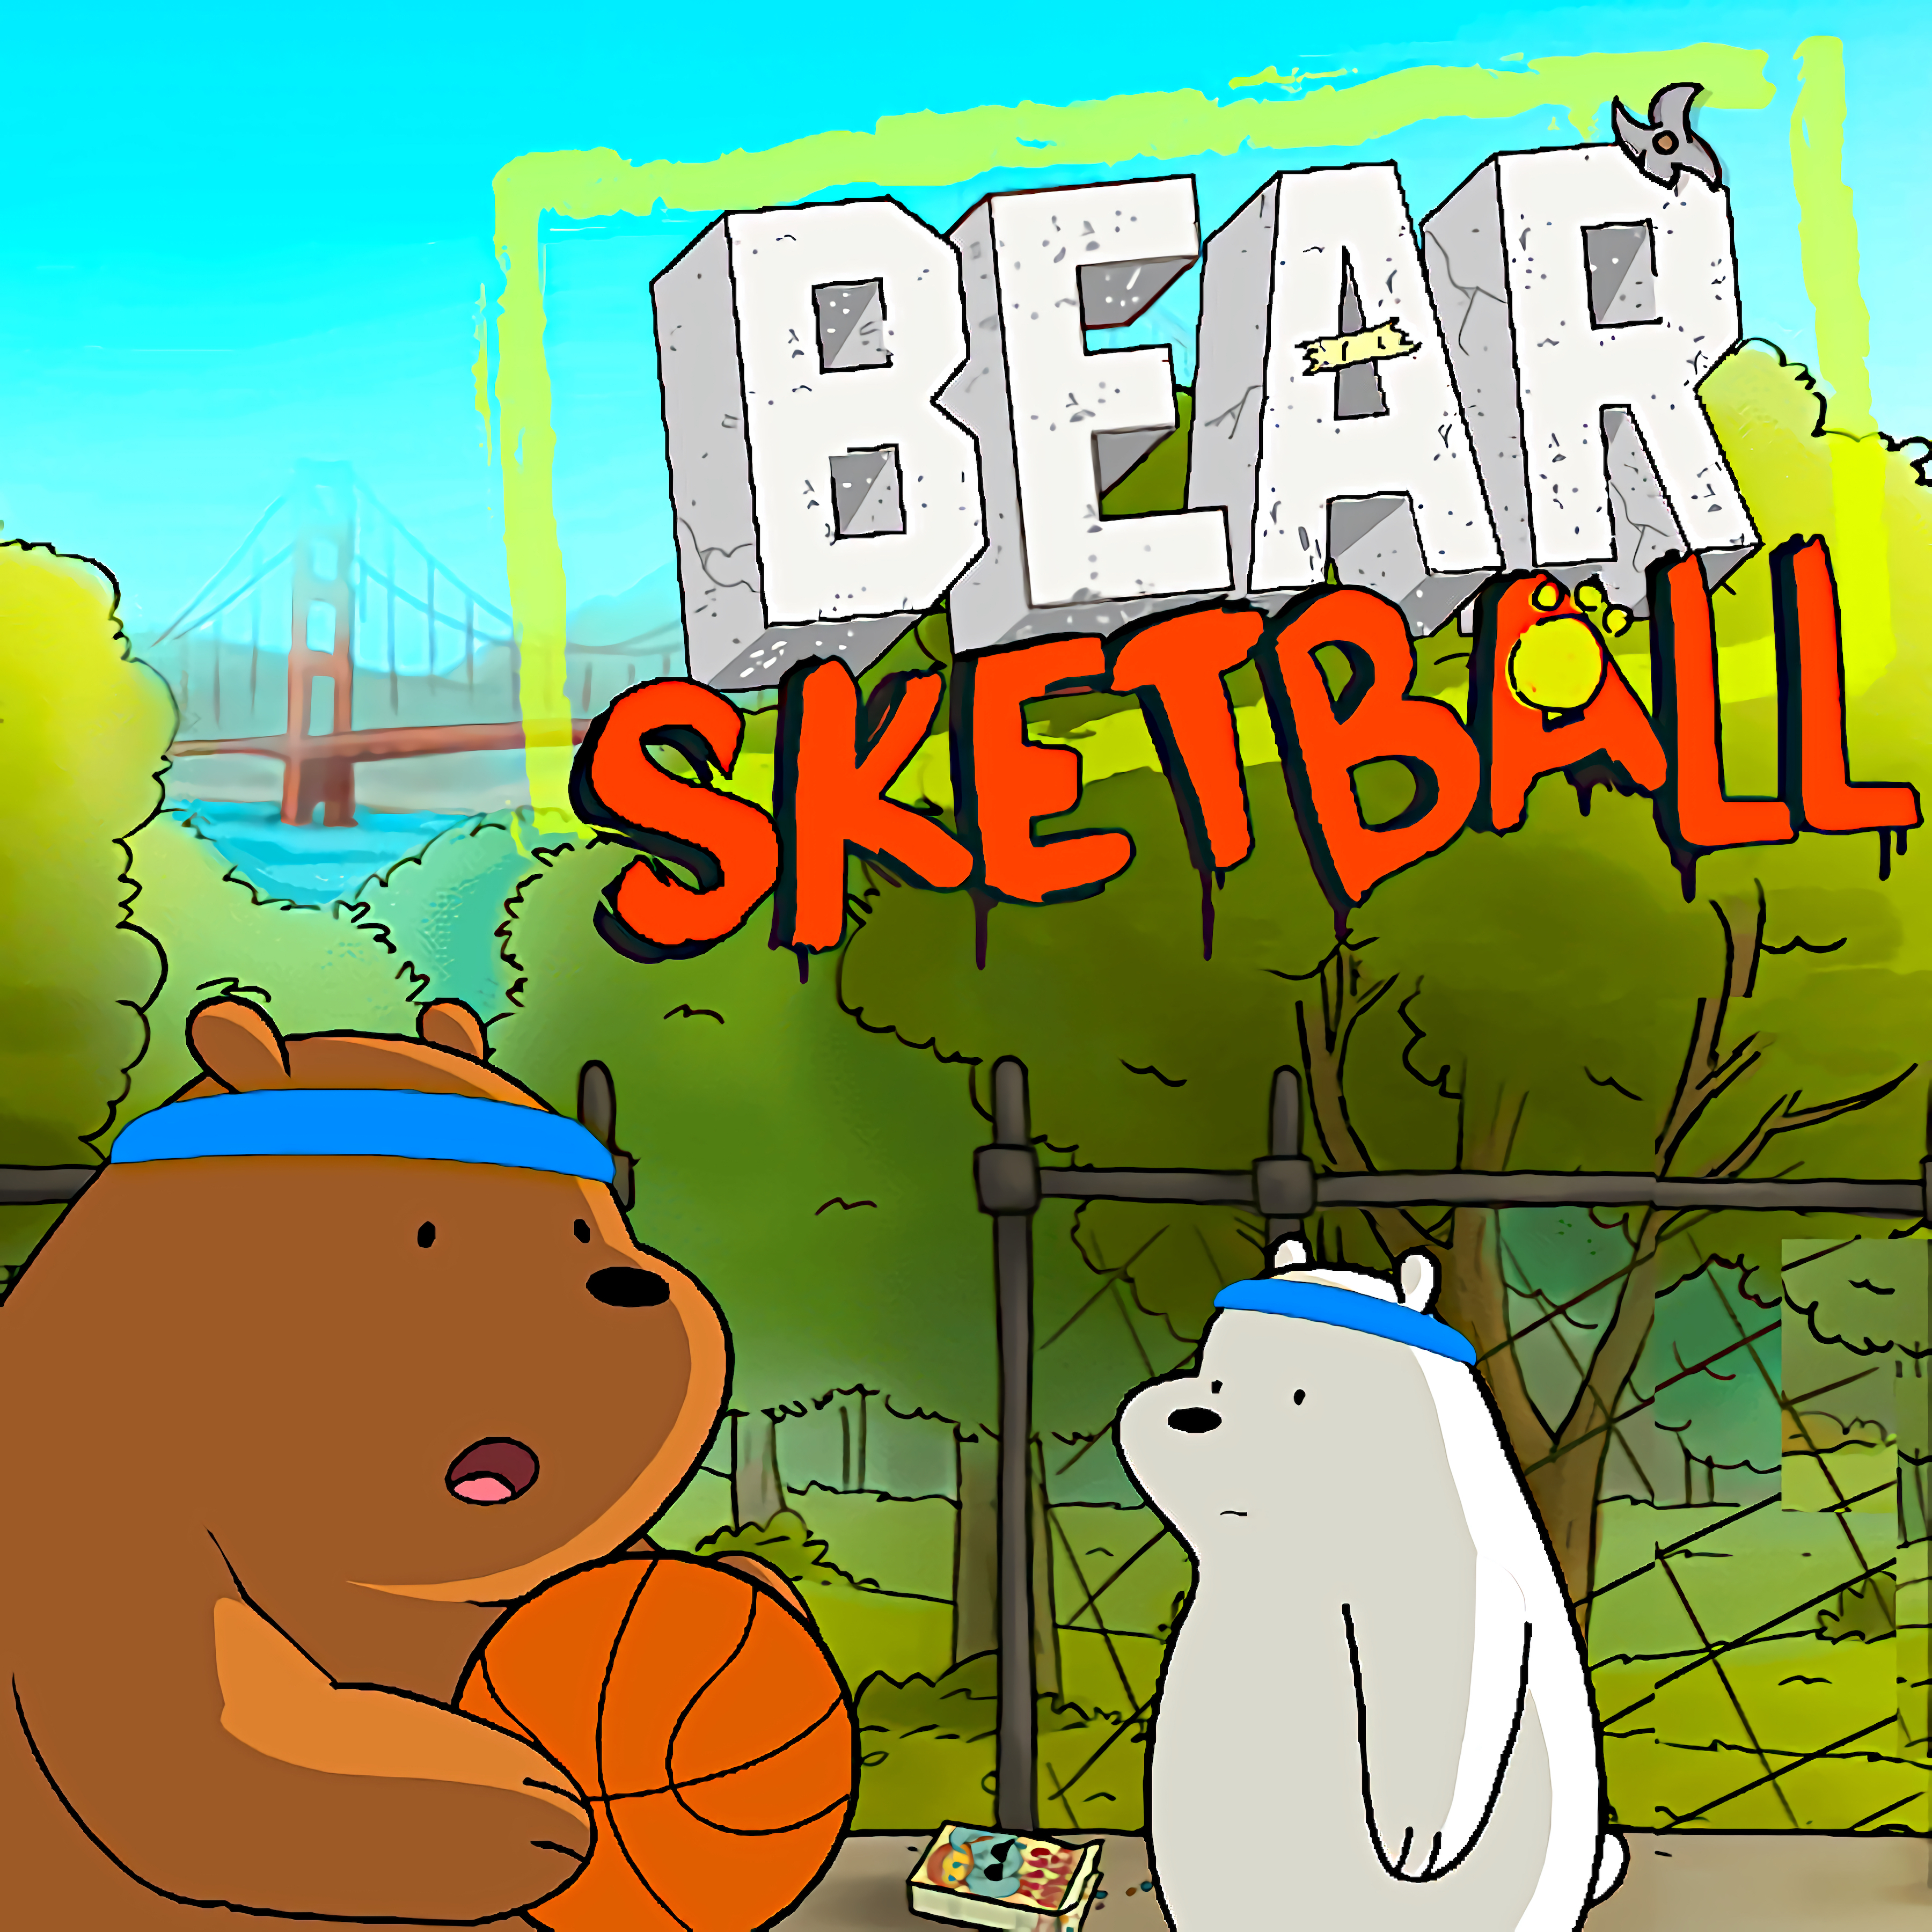 Bearsketball - We Bare Bears